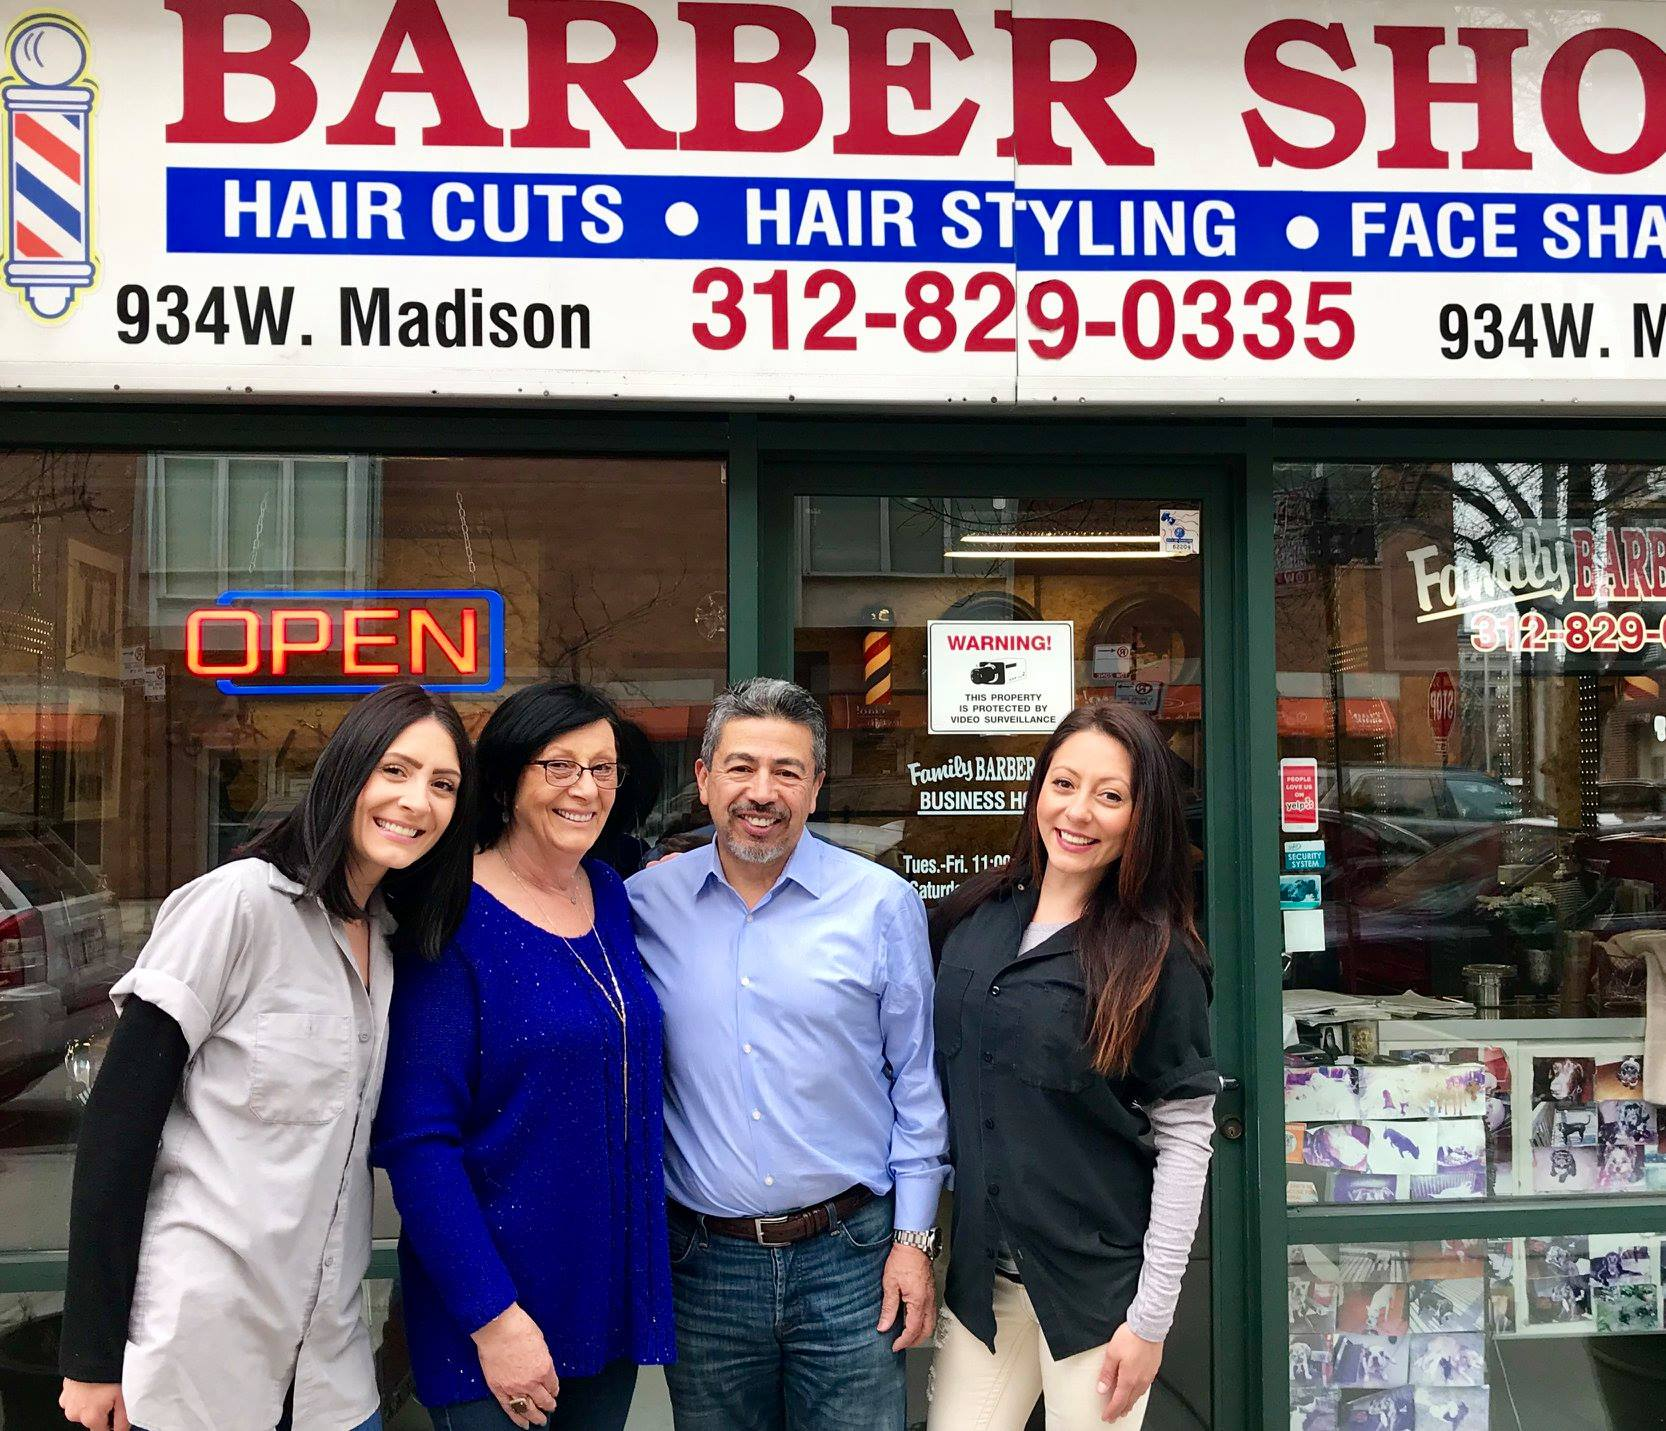 Small Biz Owner - Family Barber Shop.jpg